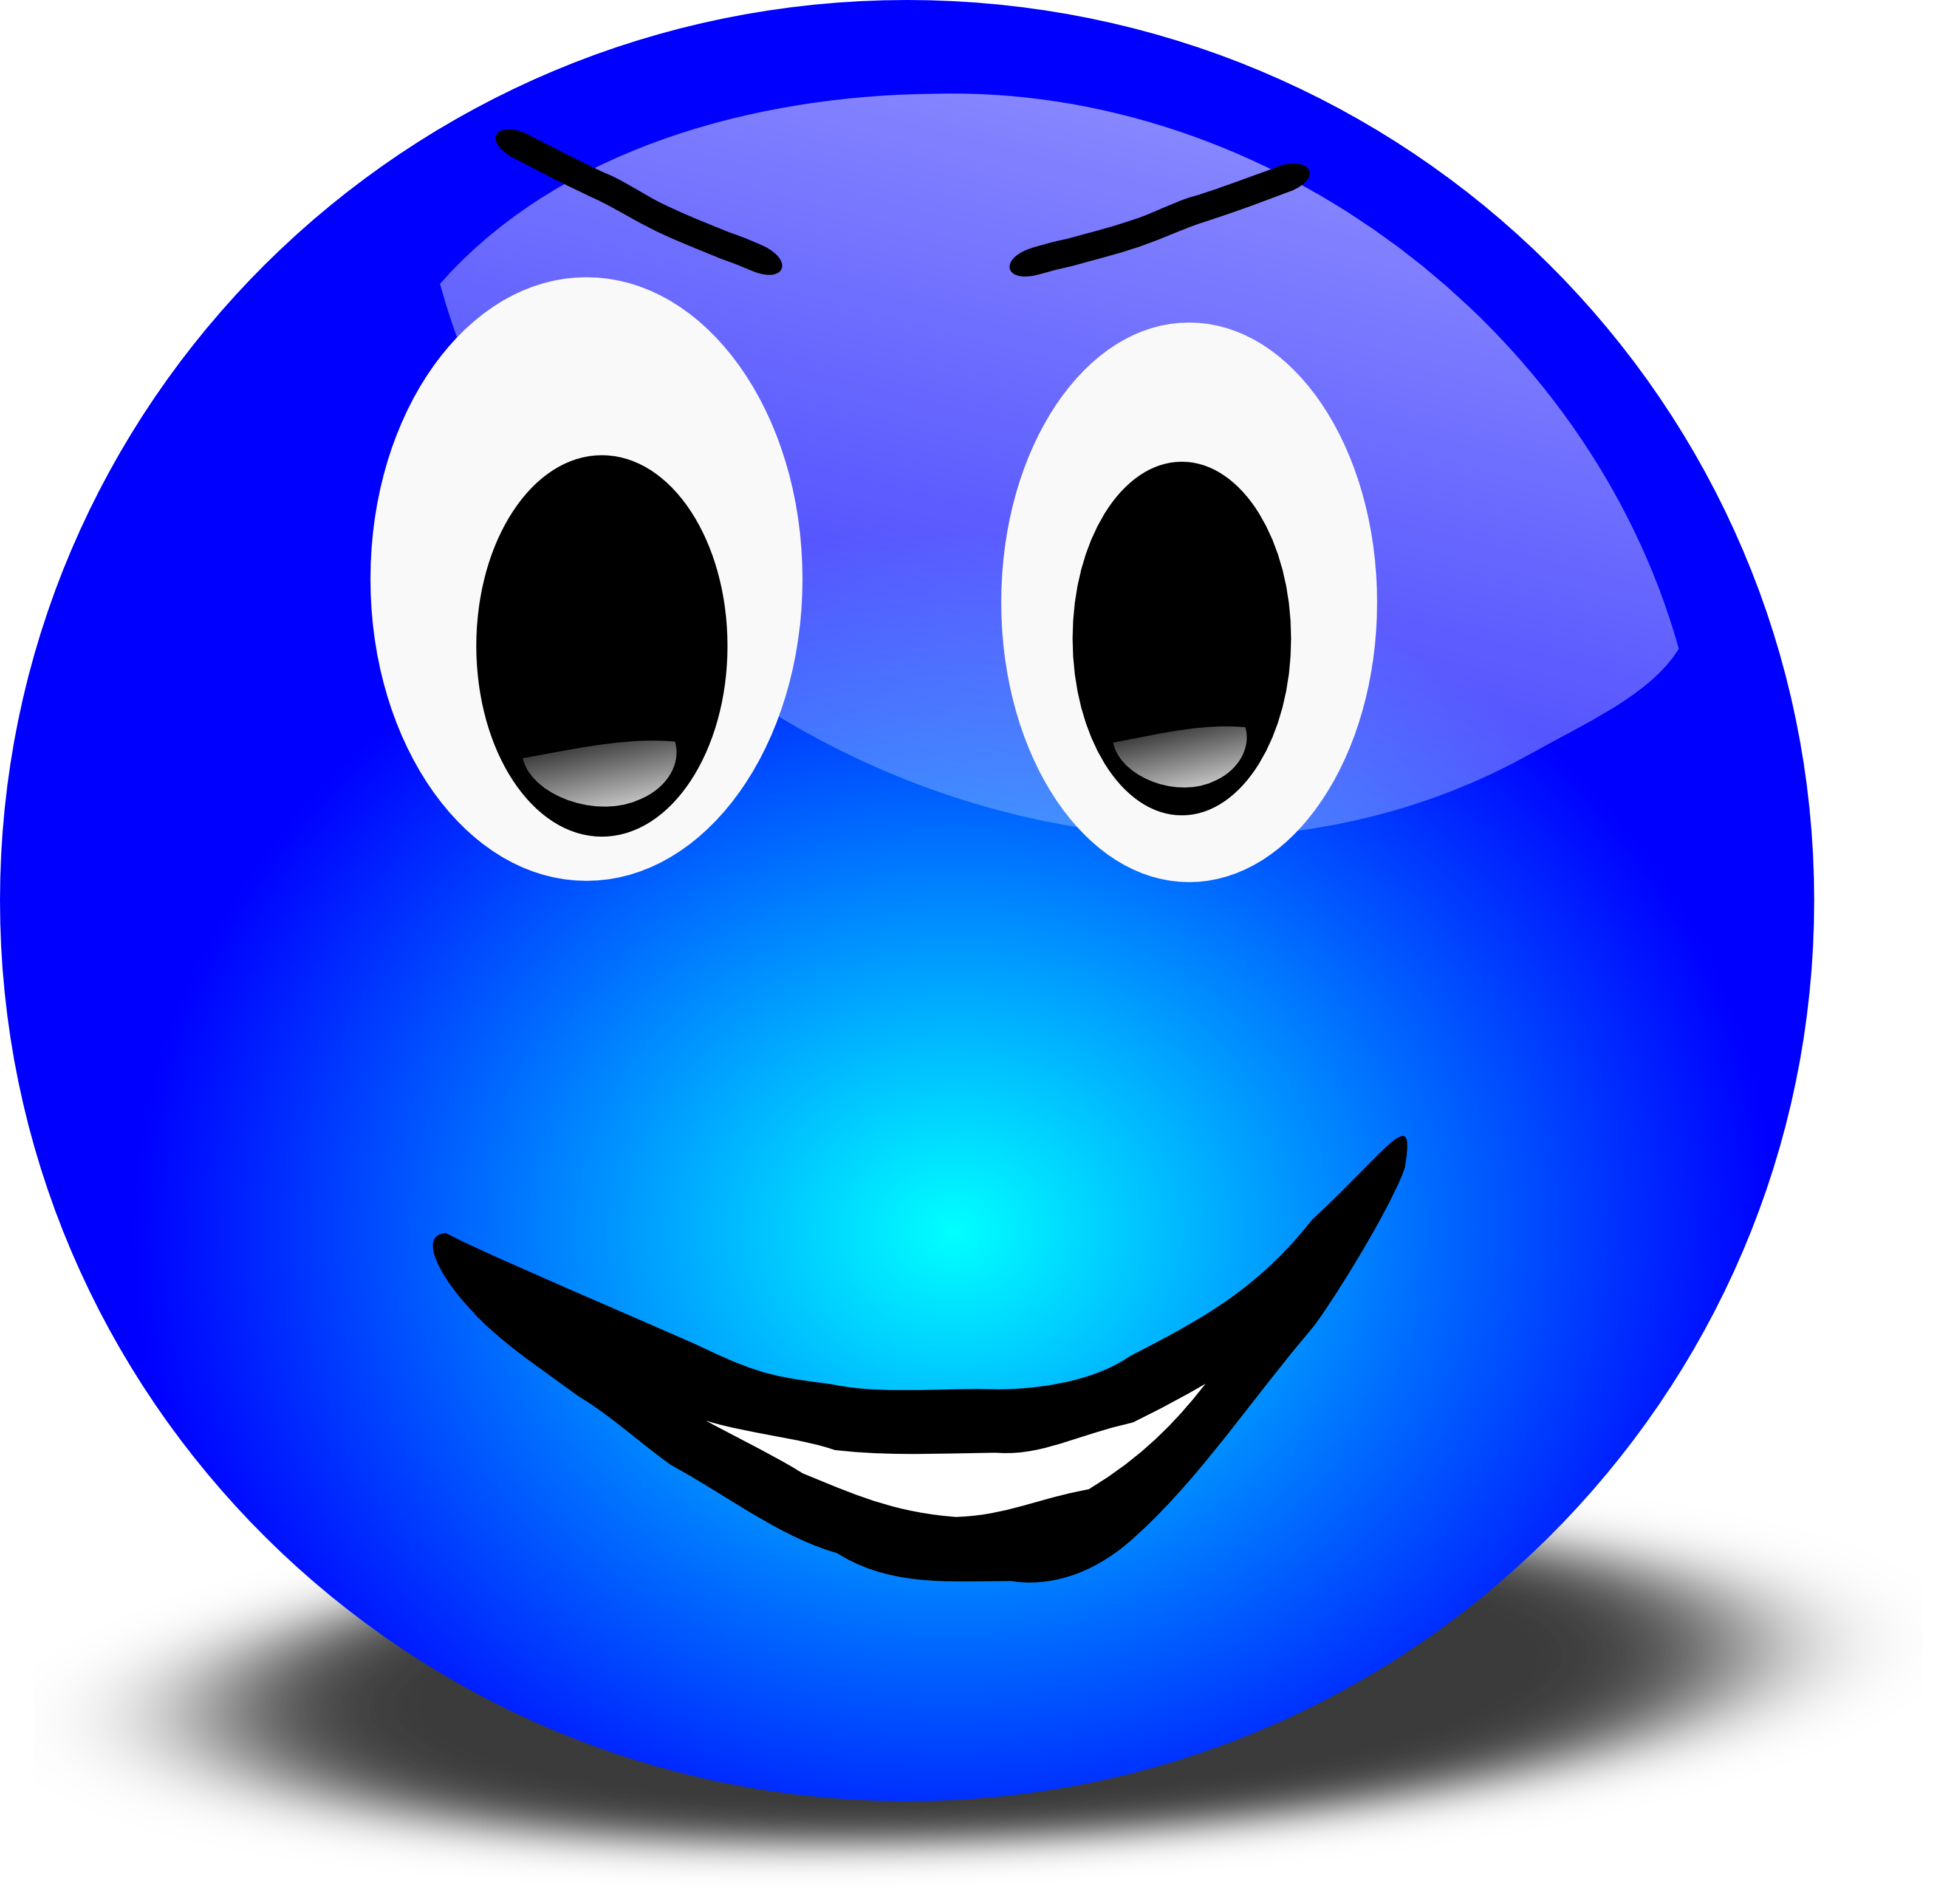 Free 3d Grinning Blue Smiley Face Clipart Illustration - Clip Art Smiley Faces Emoticons